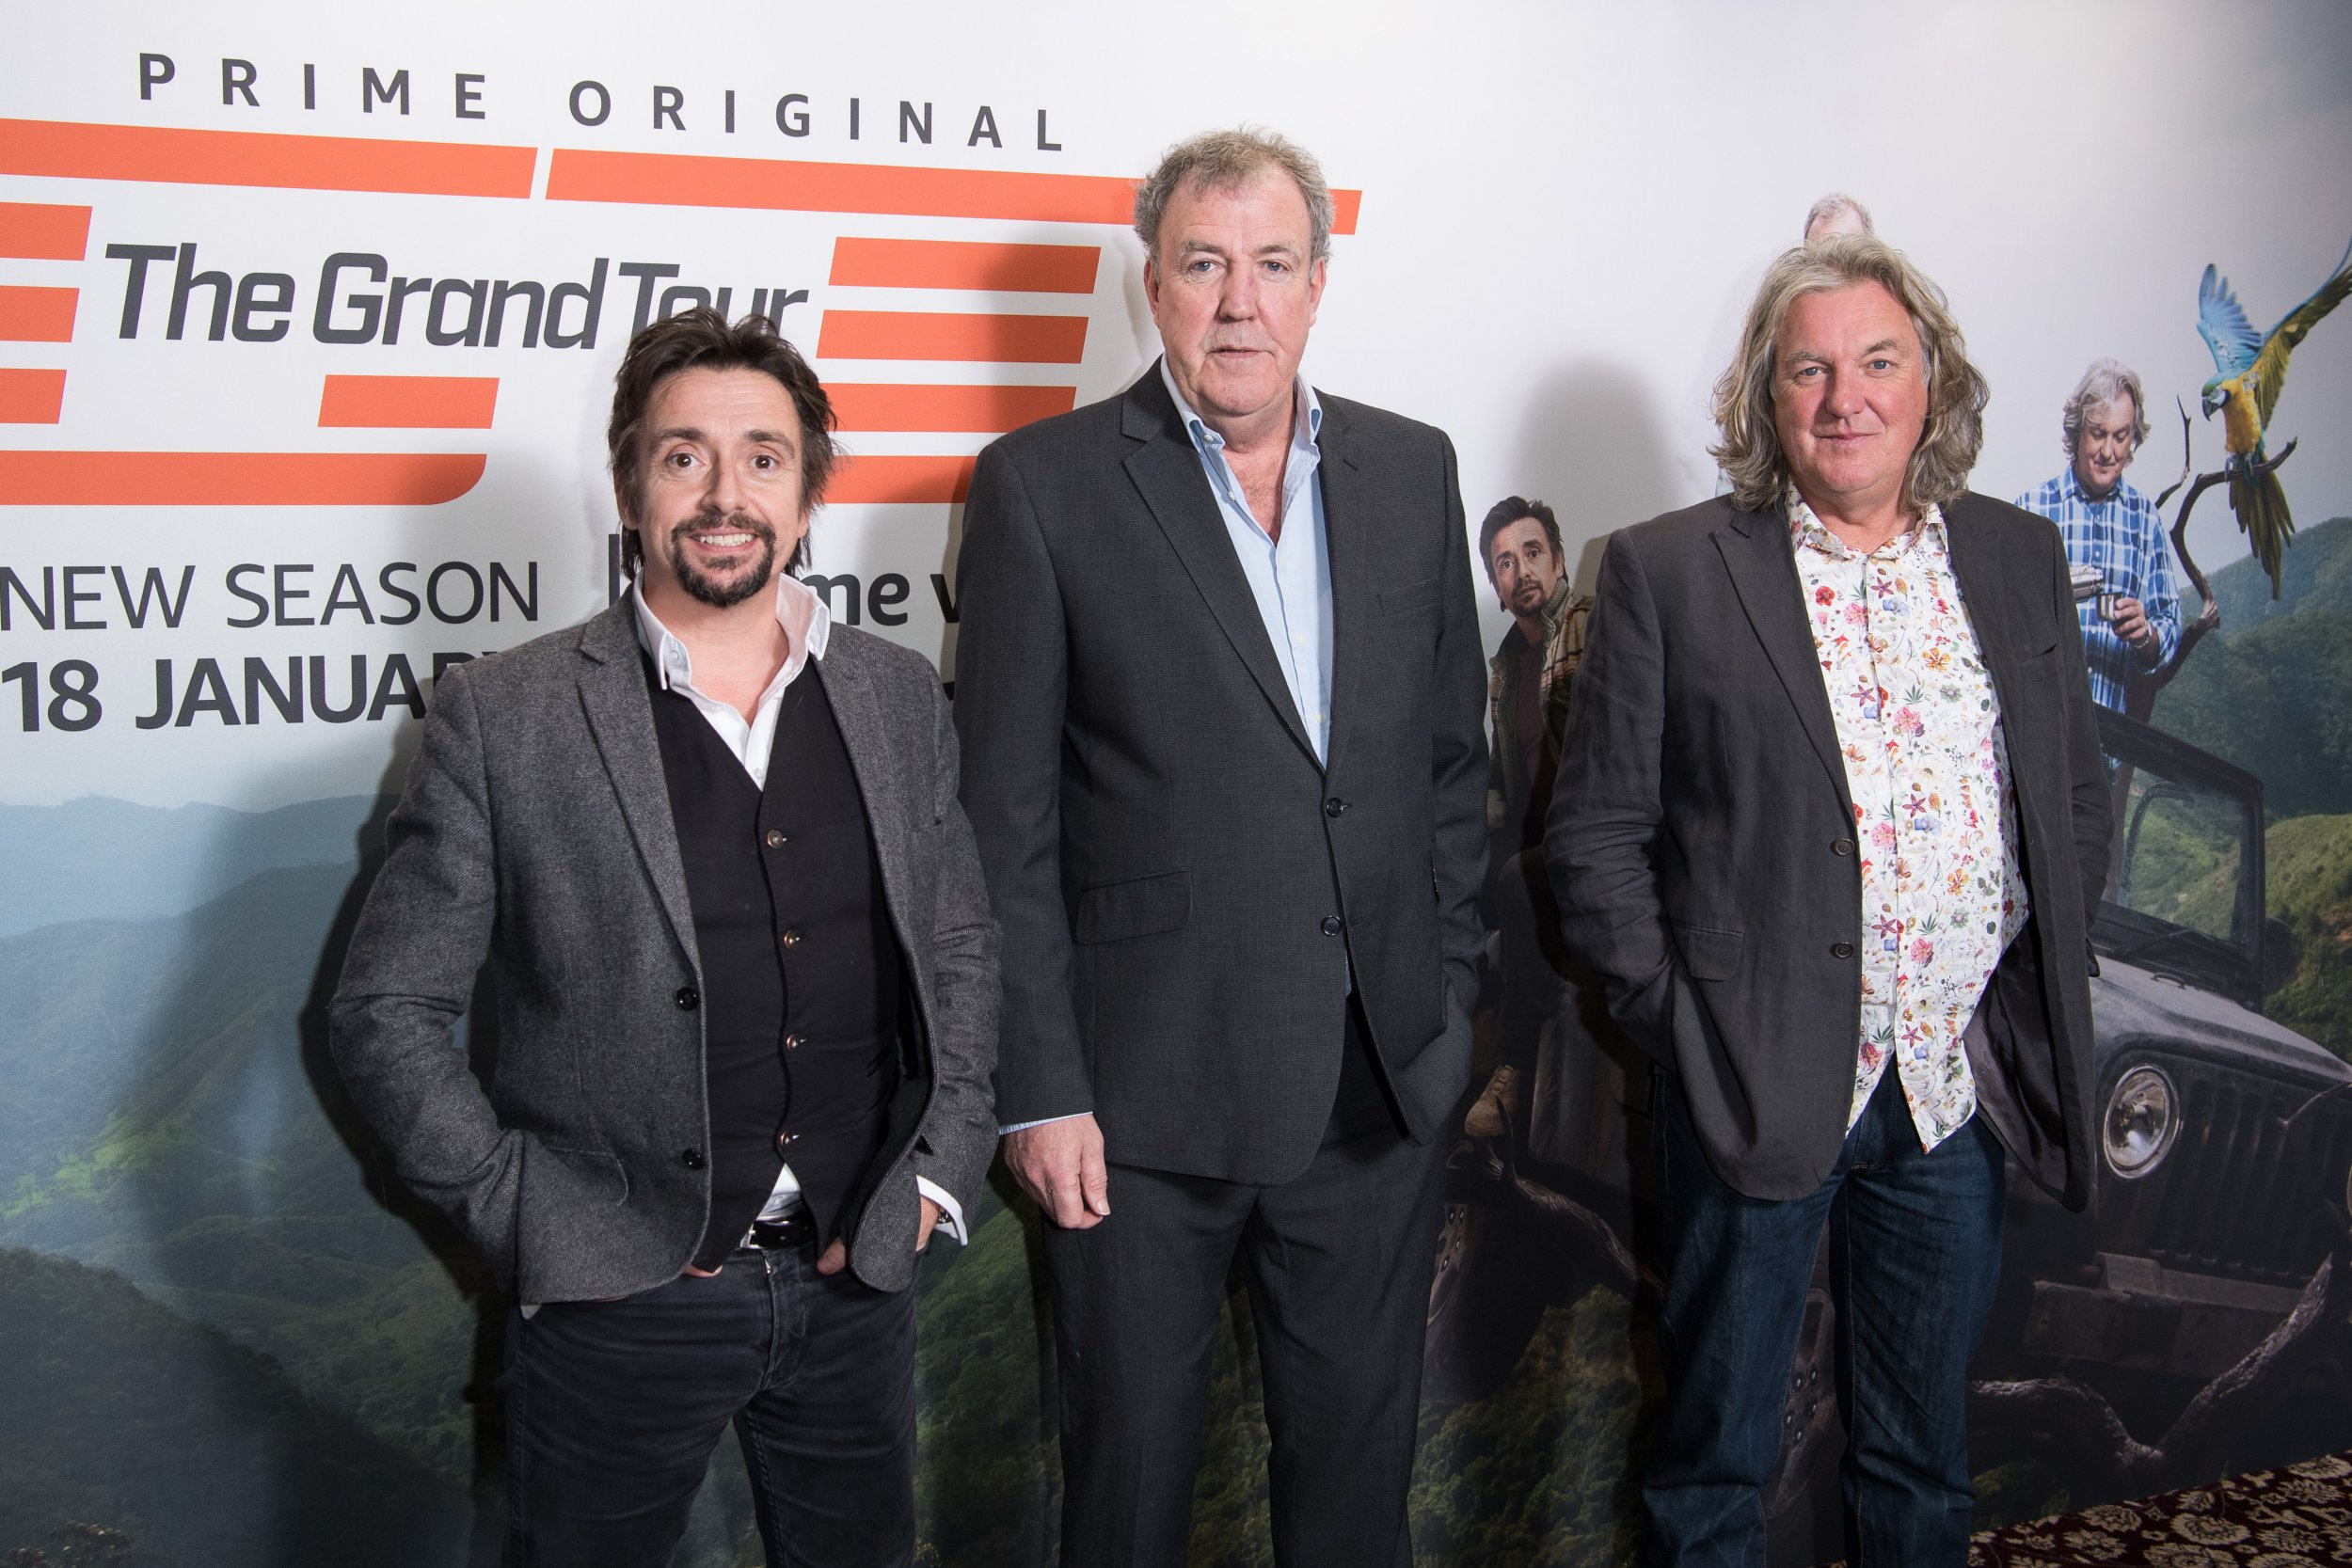 The Grand Tour hosts 'await £29m payday', three years after setting up a TV company to launch Amazon show